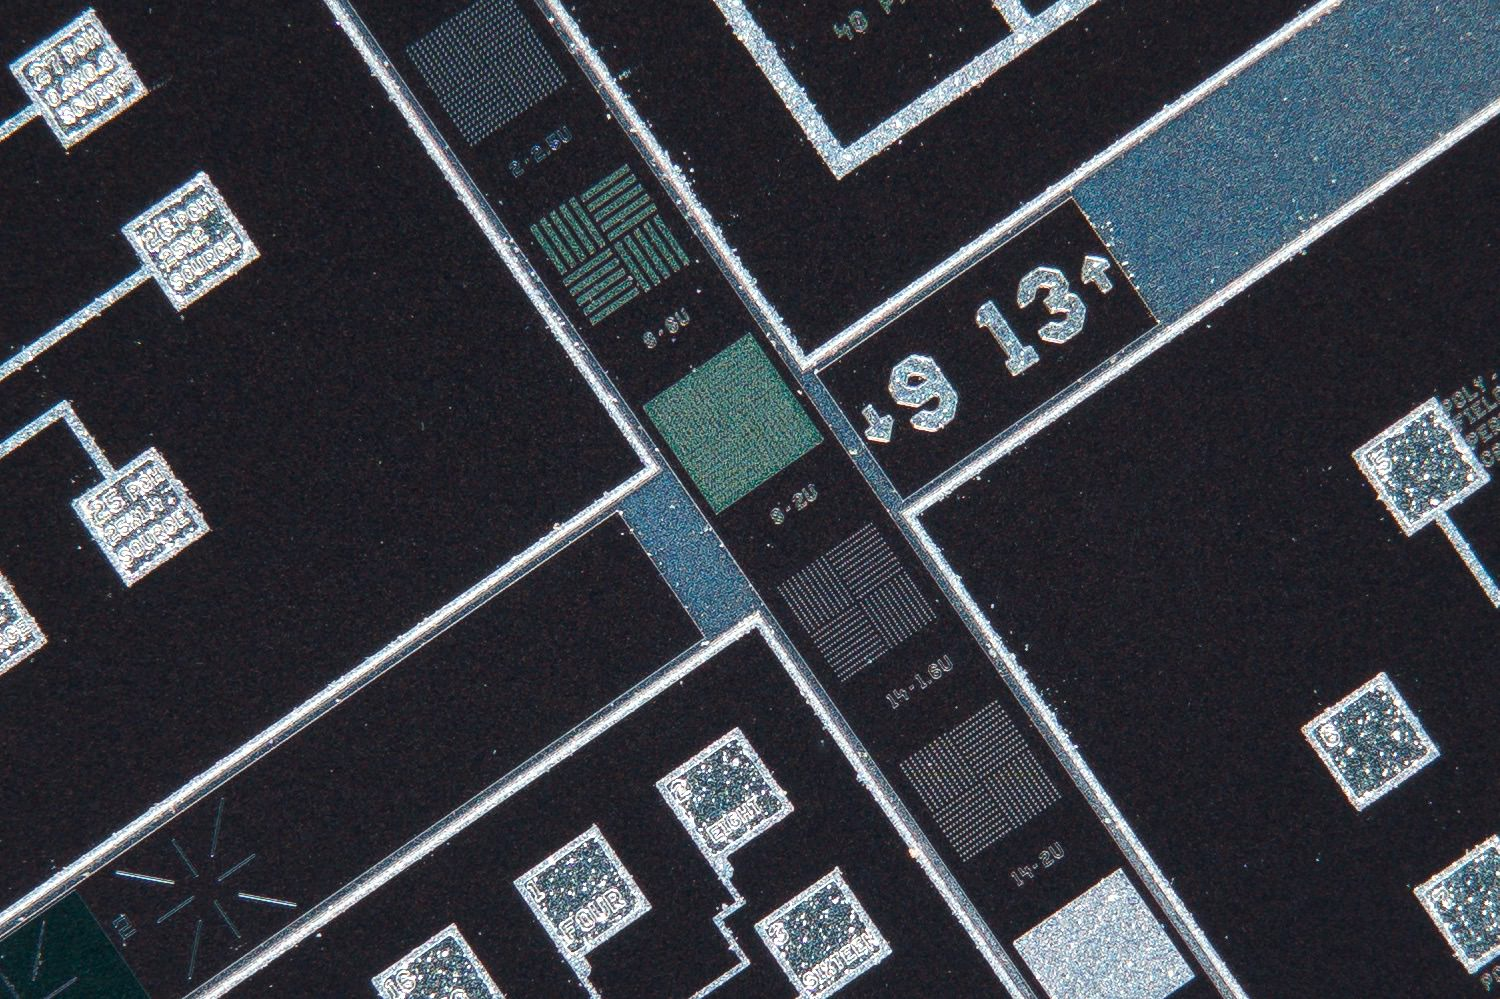 Nikon CFN Plan Apo 4x/0.20 160/- Finite Microscope Objective 100% actual pixel view center crop. Clicking on an image will open a larger version.